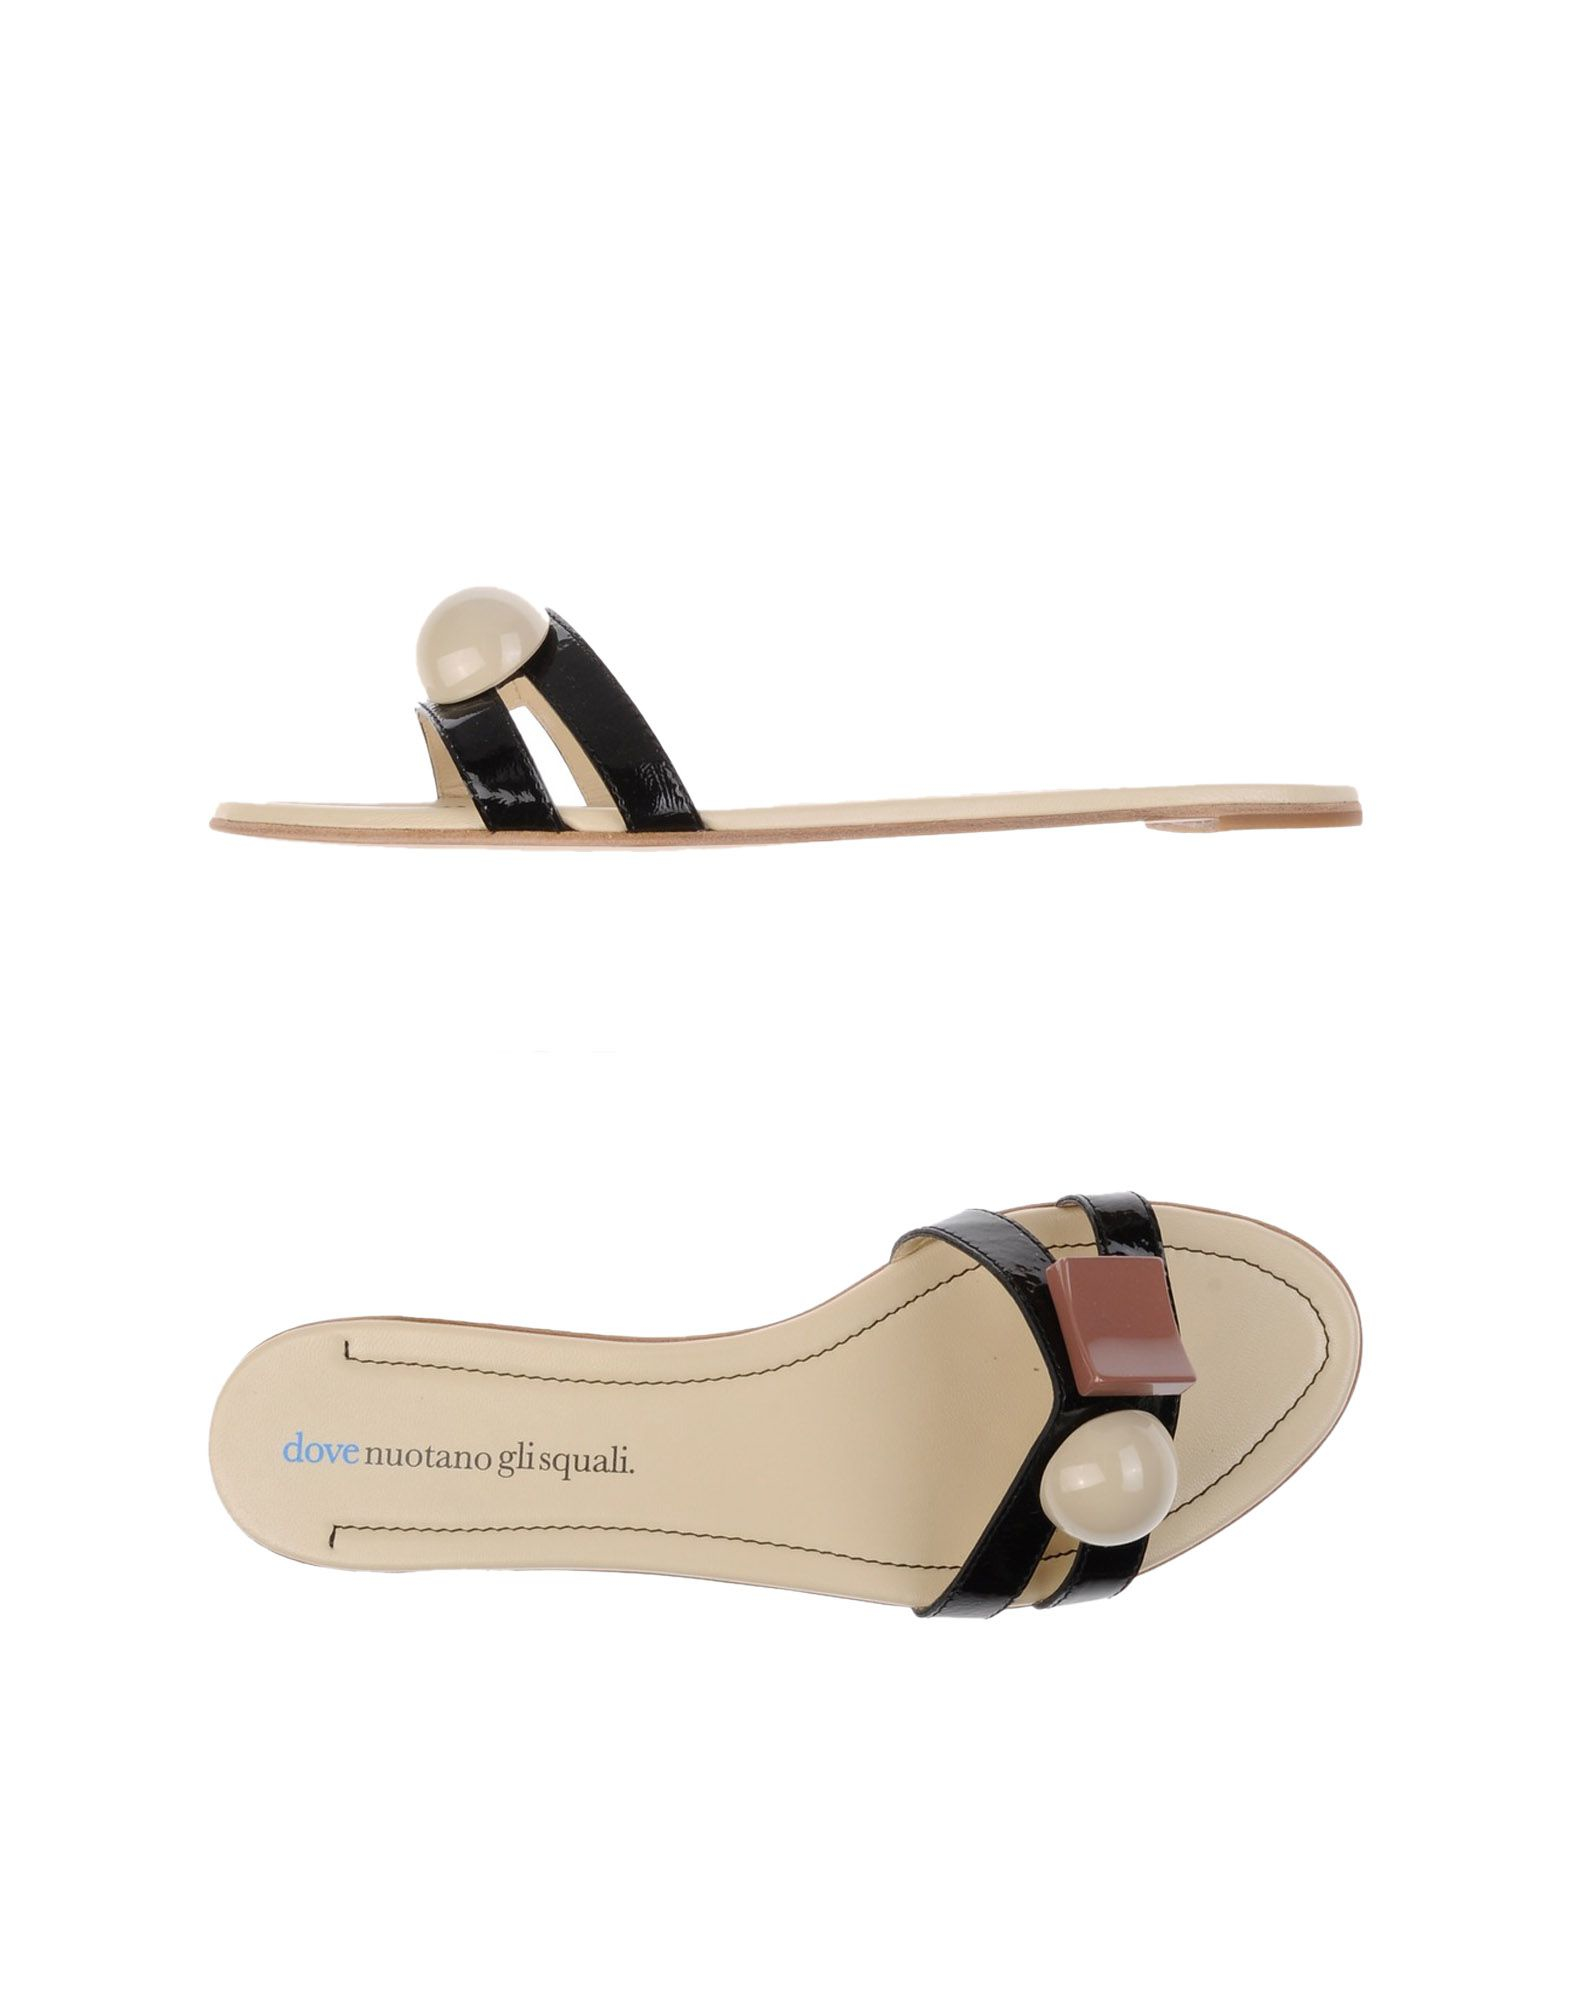 FOOTWEAR - Sandals Dove Nuotano Gli Squali From China Prices New Arrival For Sale Low Cost Cheap Online Outlet Deals at6GmpSlhw